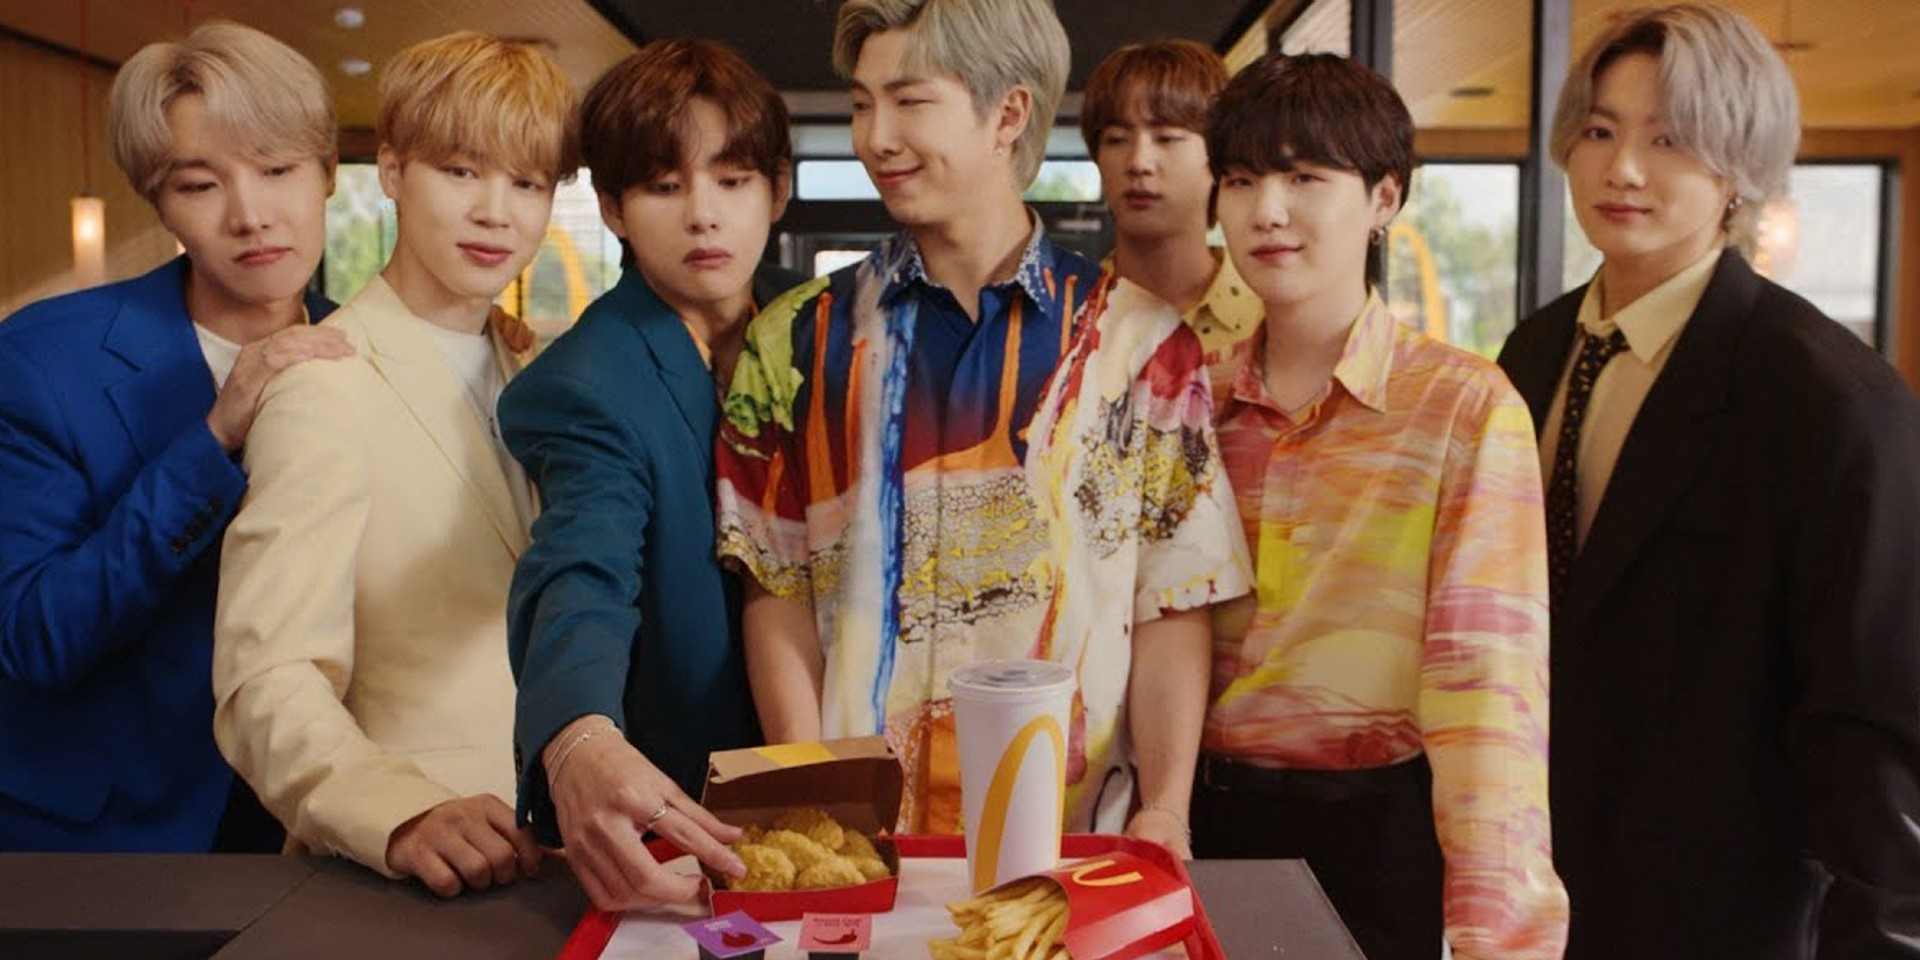 McDonald's Philippines sold close to 1 million BTS Meals in less than a week